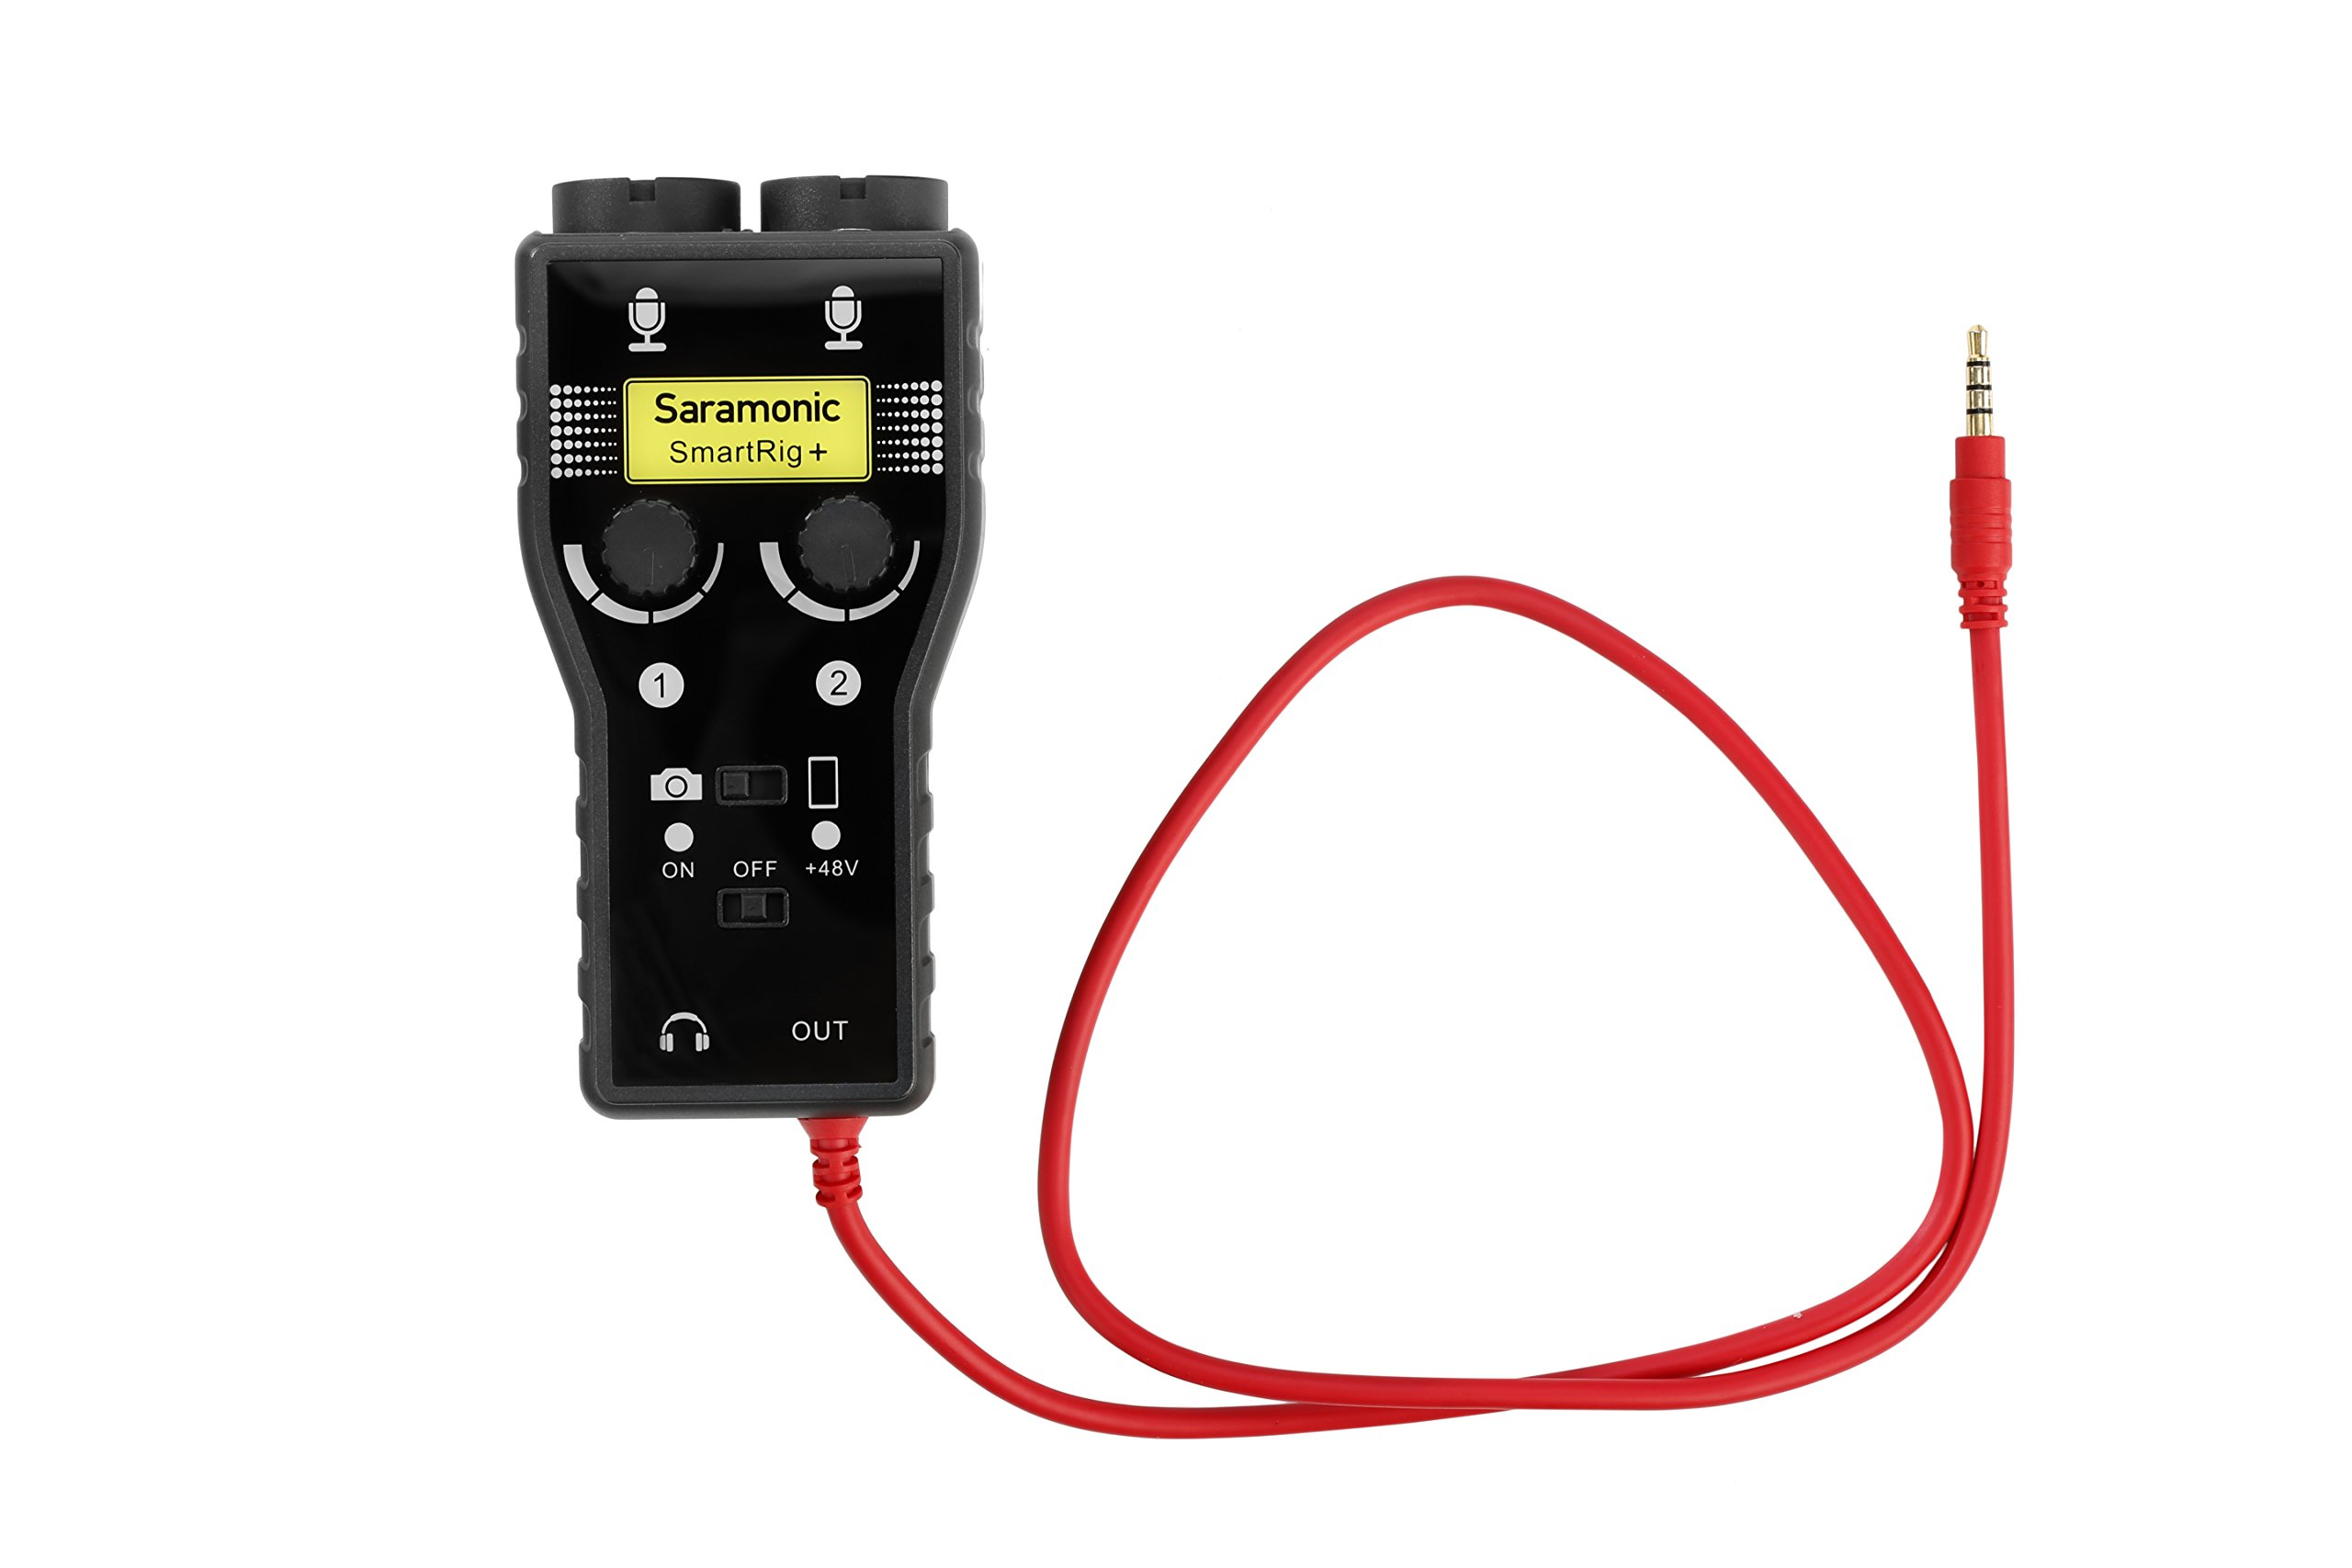 Saramonic SmartRig+ 2-Channel XLR, 3.5mm Microphone Audio Mixer with Phantom Power Preamp and Guitar Interface for DSLR Cameras, Camcorders, iPhone, iPad, iPod, and Android Smartphones